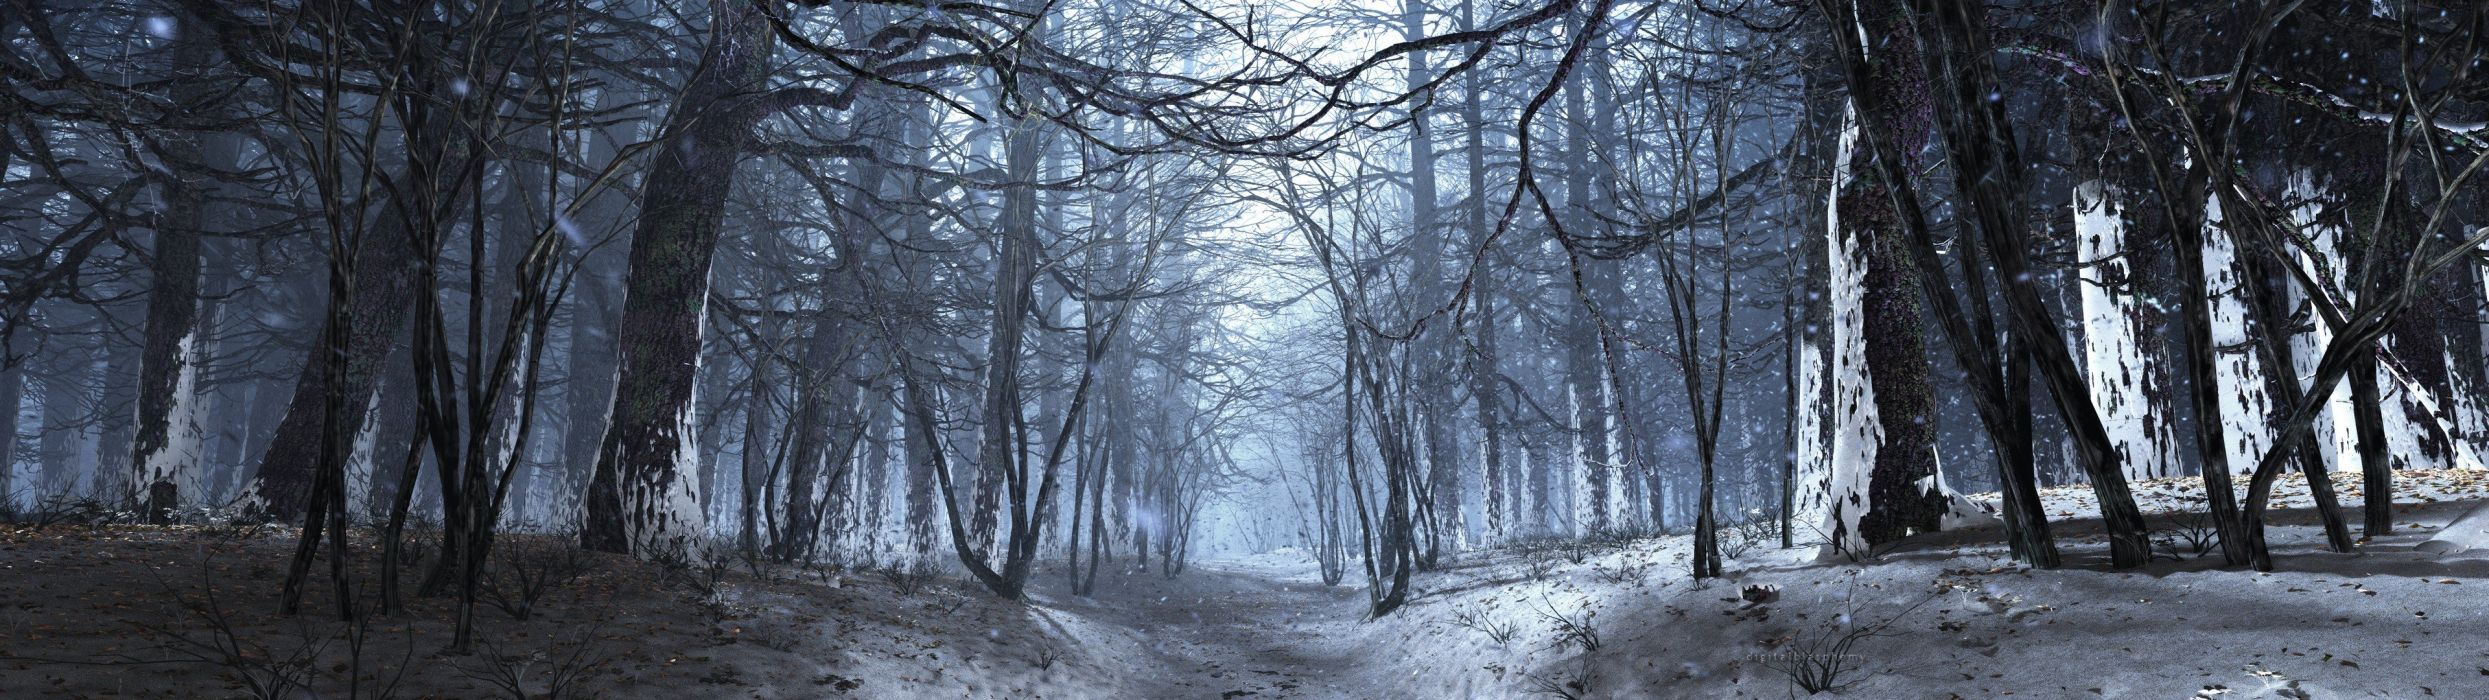 landscapes winter forests multiscreen wallpaper